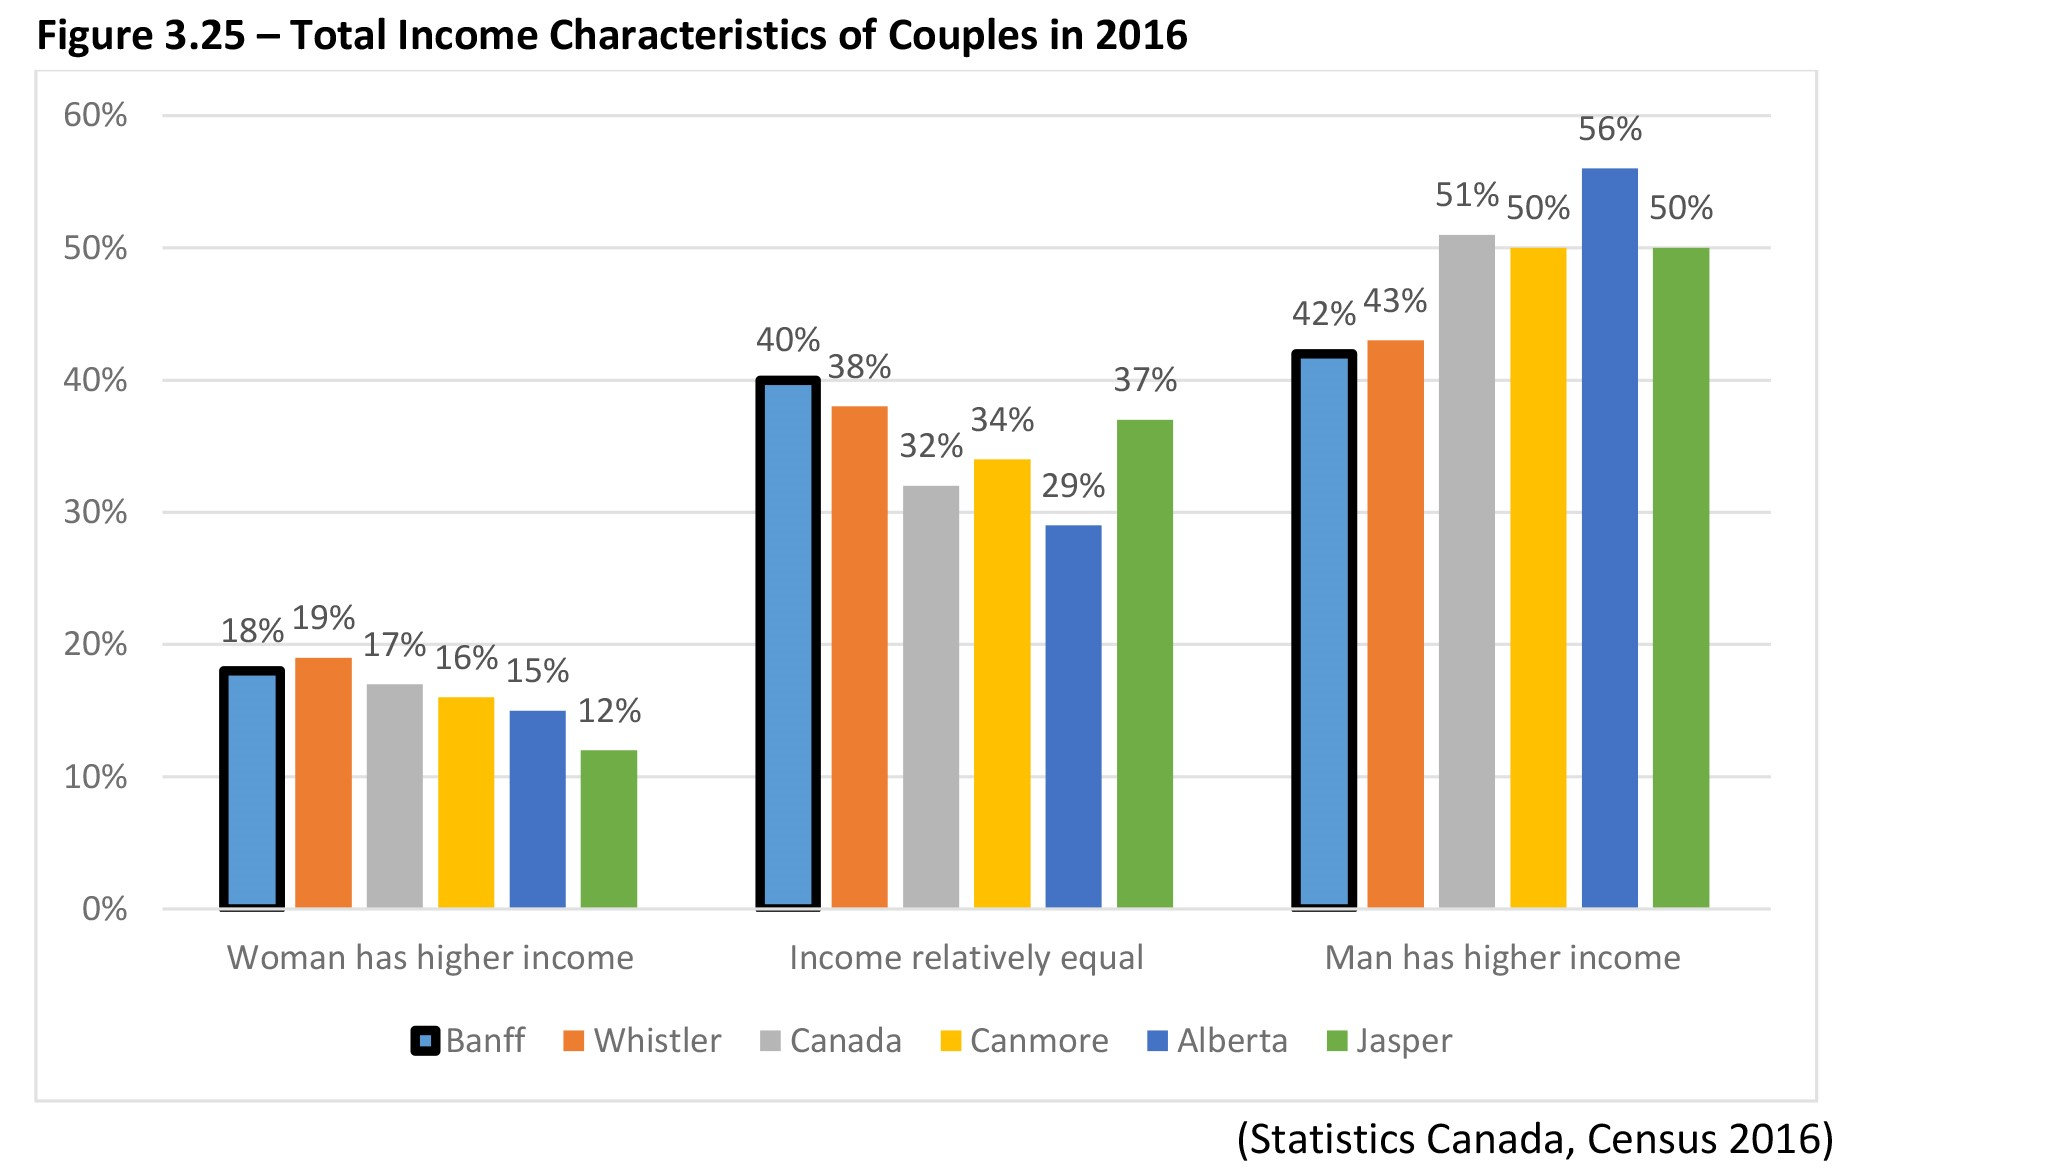 Total income characteristics of couples